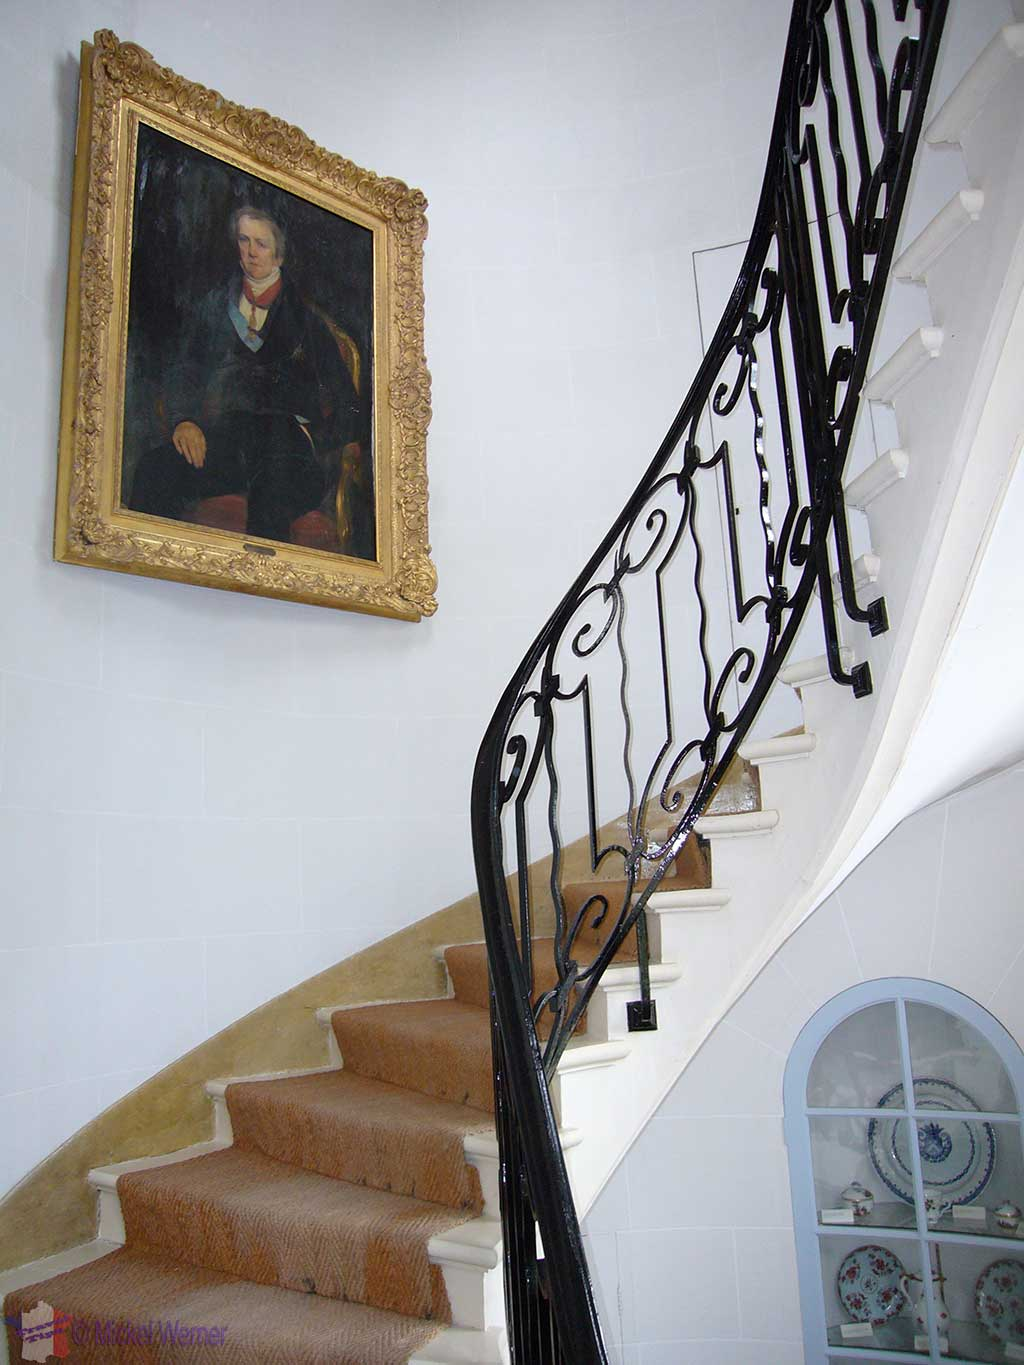 Inside the Chateau (Castle) of Cany-Barville